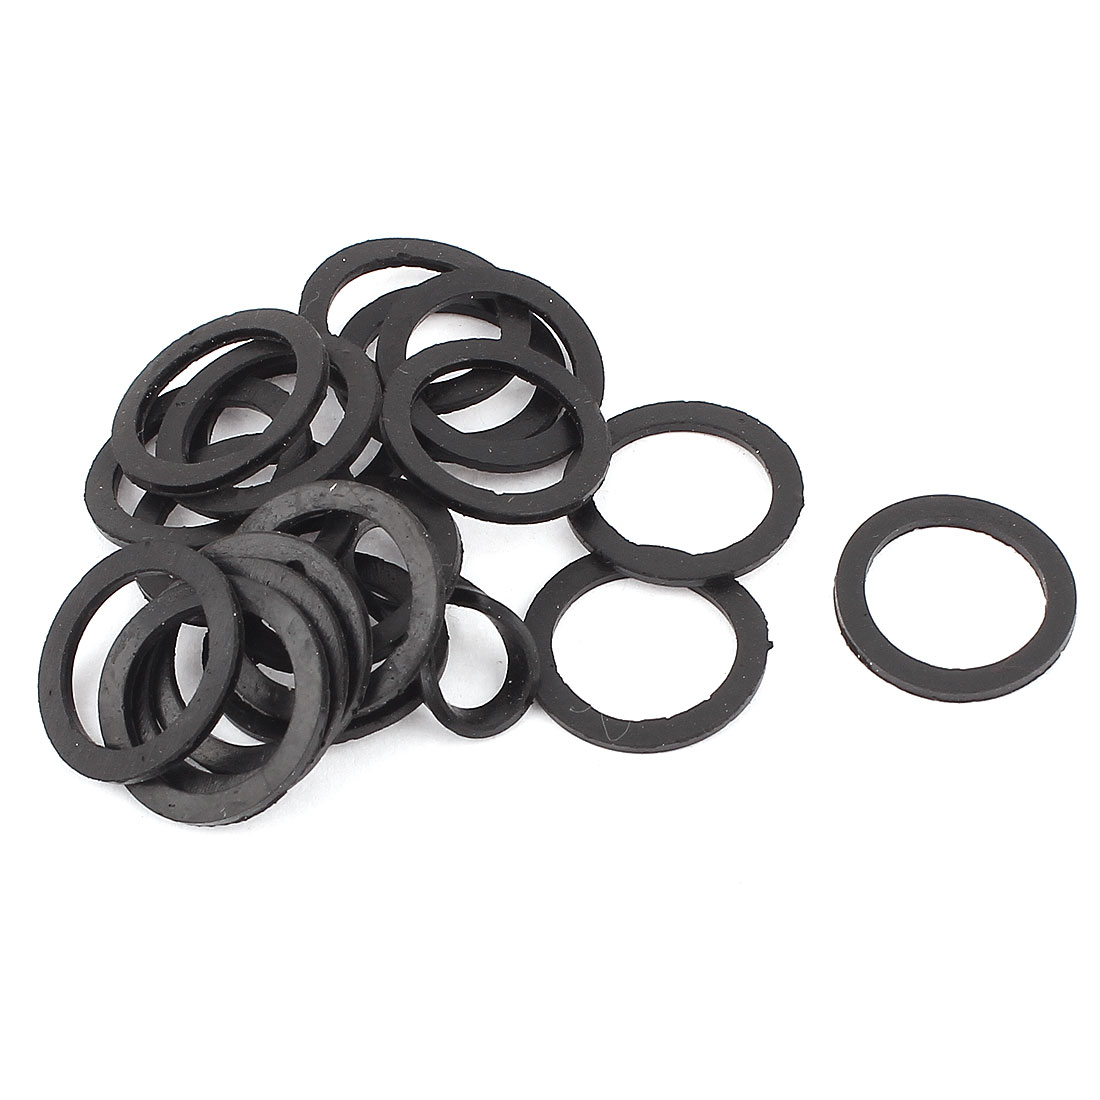 20mm x 15mm x 1mm Rubber O-Ring Hose Gasket Sealing Flat Washer Black 20Pcs for PG7 Cable Gland